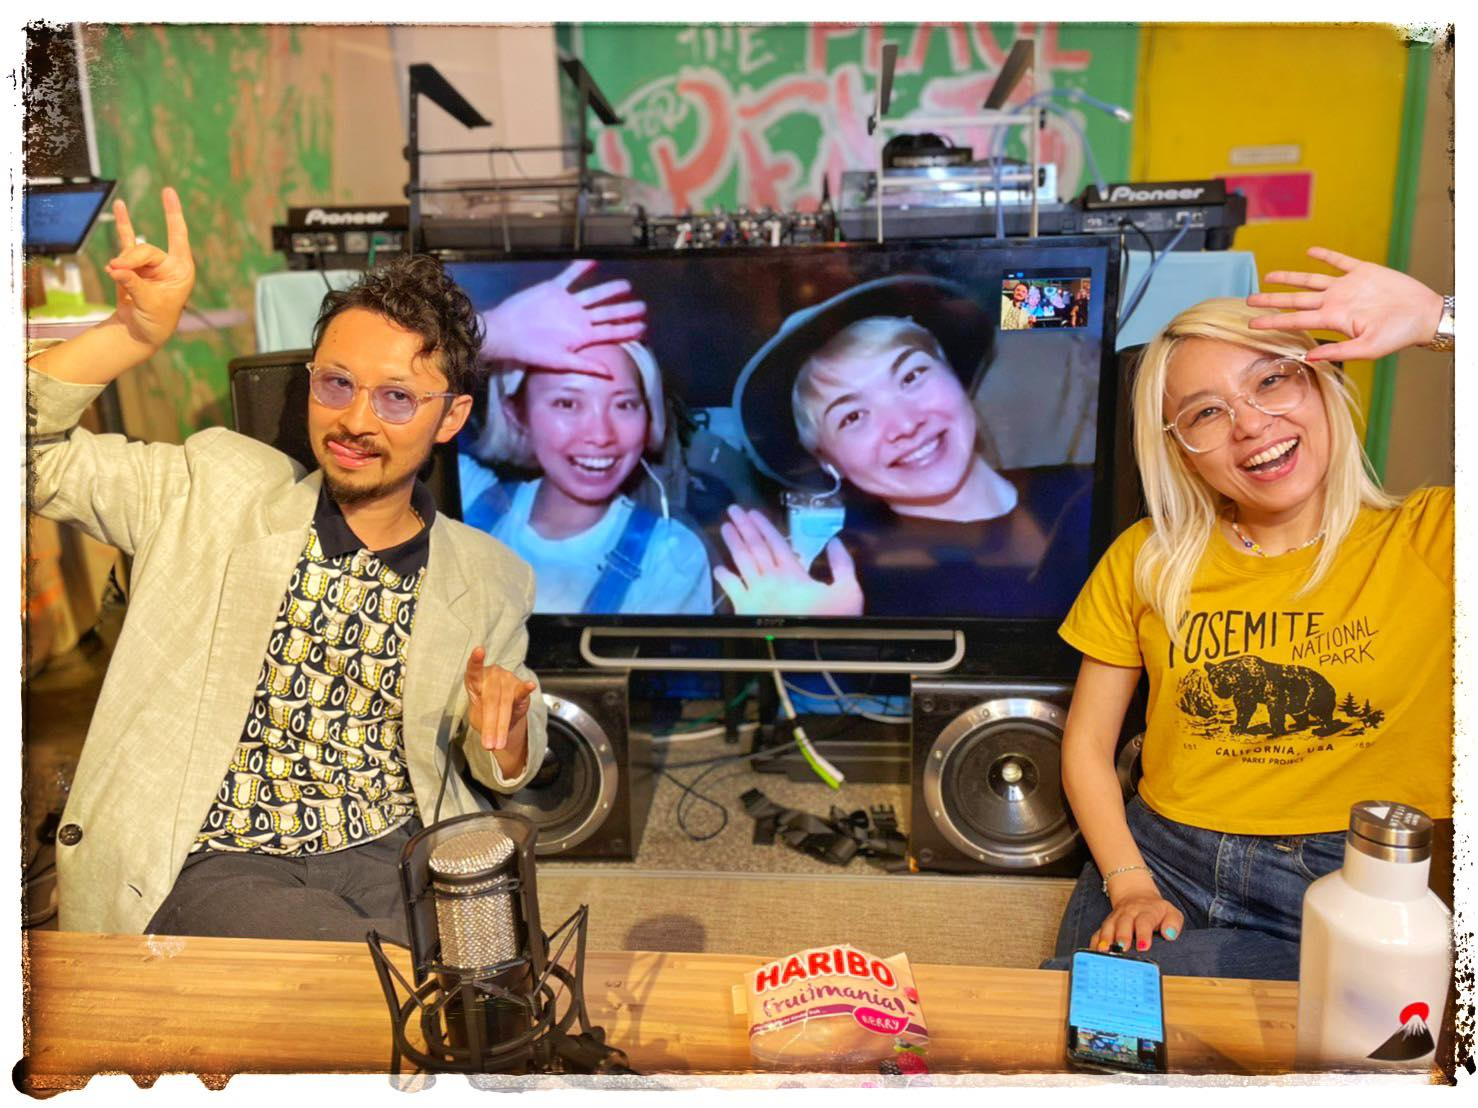 【Namy& home】Telephone Guest:キャンプ女子株式会社(キャンジョ)